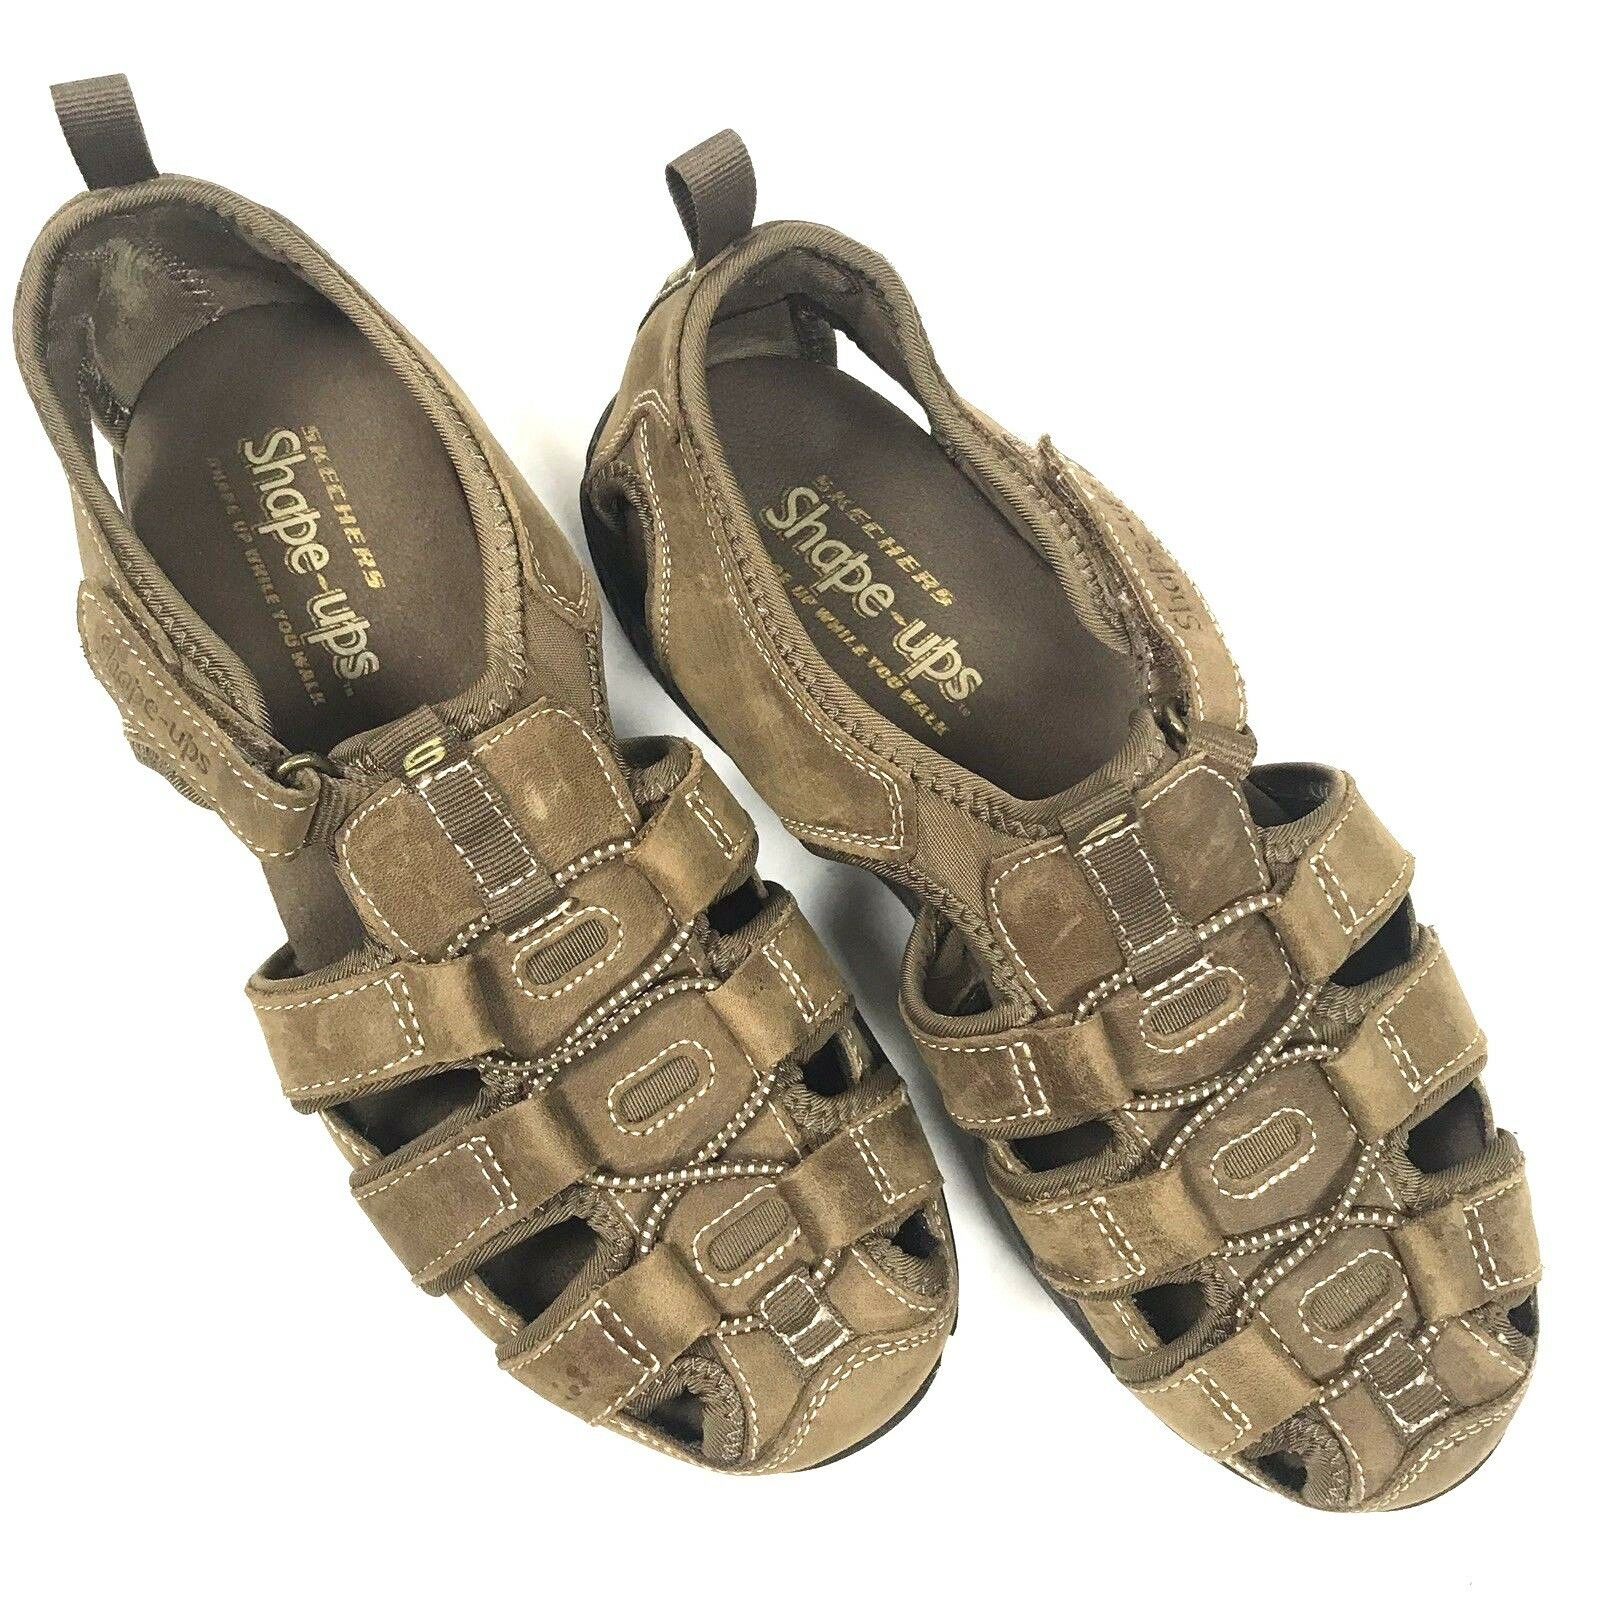 Sketchers Shape Ups Women's Sandals Size 8 Brown Tan Toning Walking Spell Out